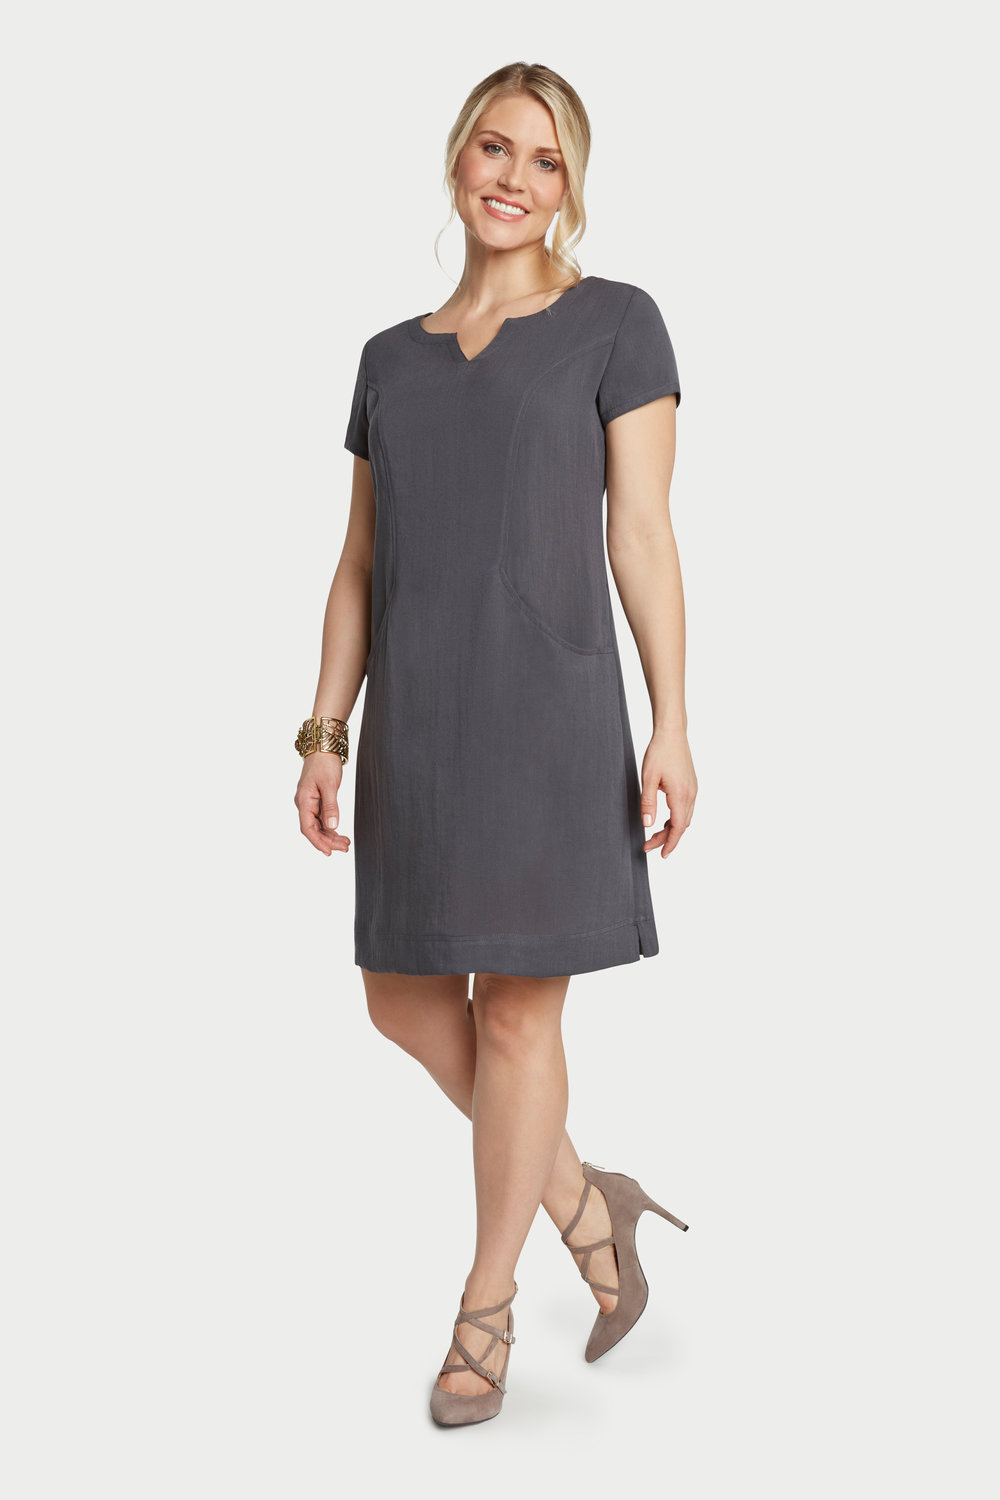 AAD260 - V-Neck Dress    Charcoal - CL4394